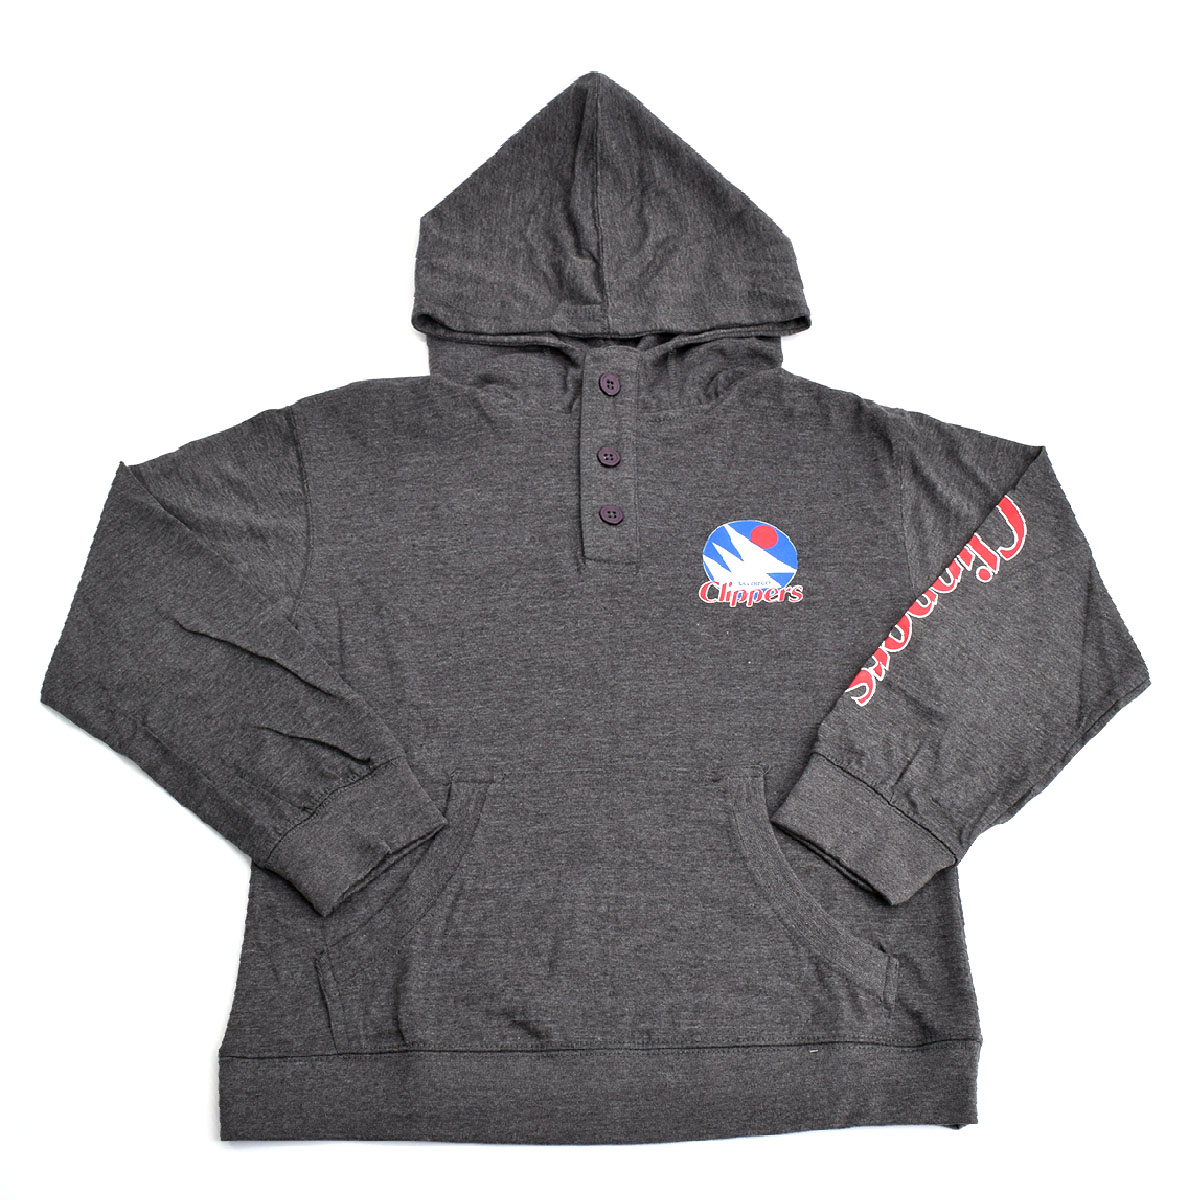 Los Angeles Clippers Youth Button Henley Hoodie (Gray)